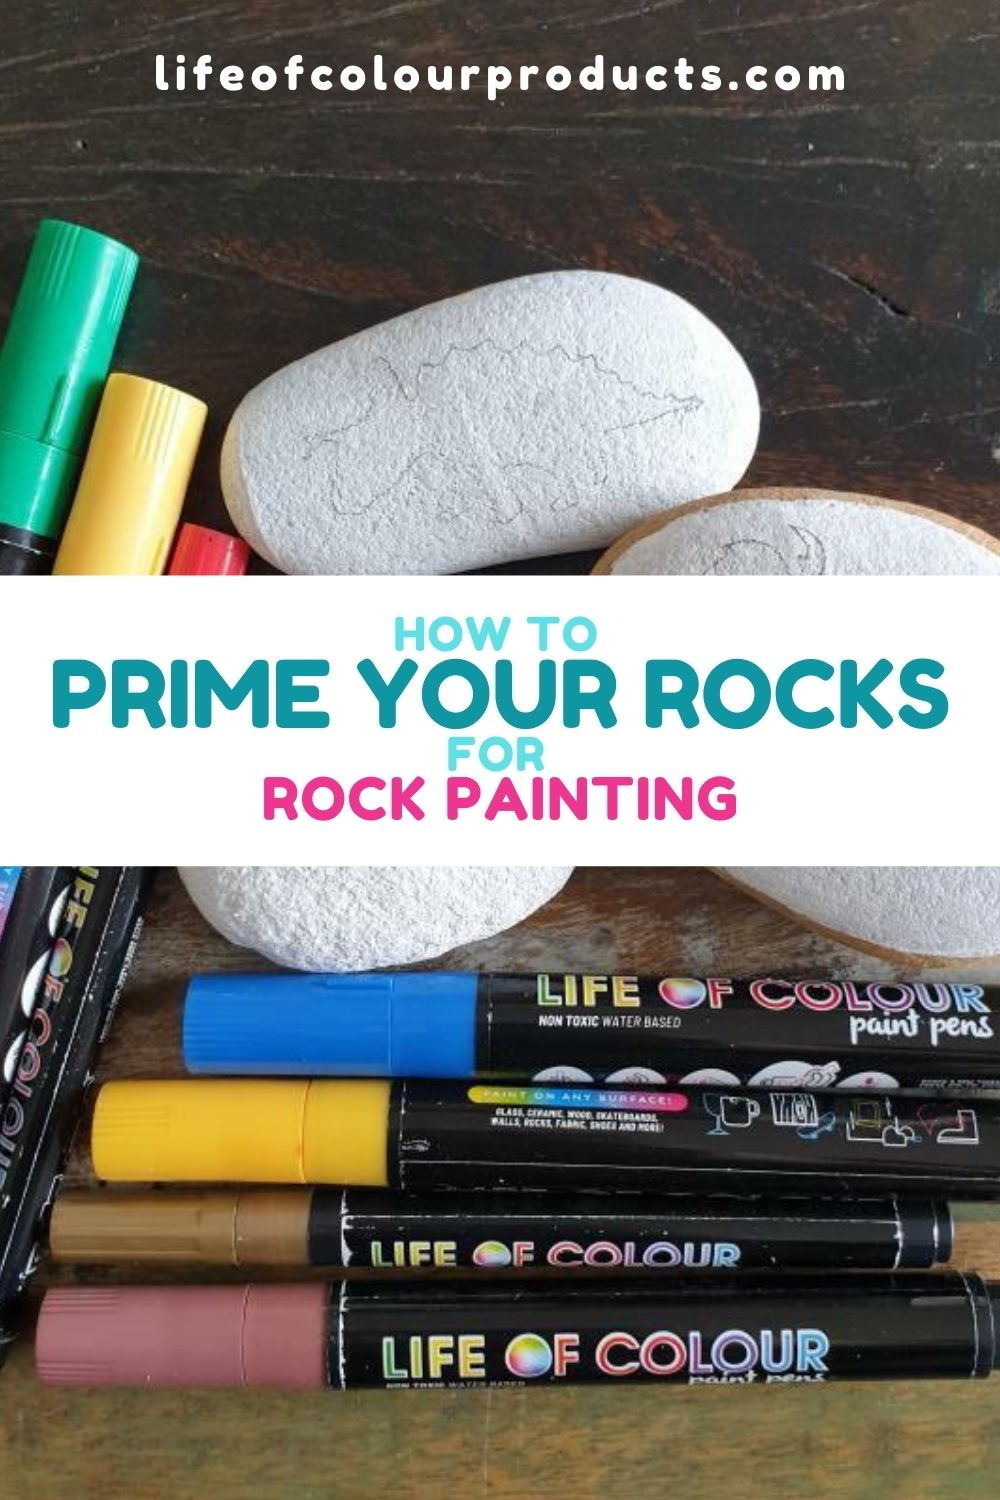 Do you need to prime rocks before painting?